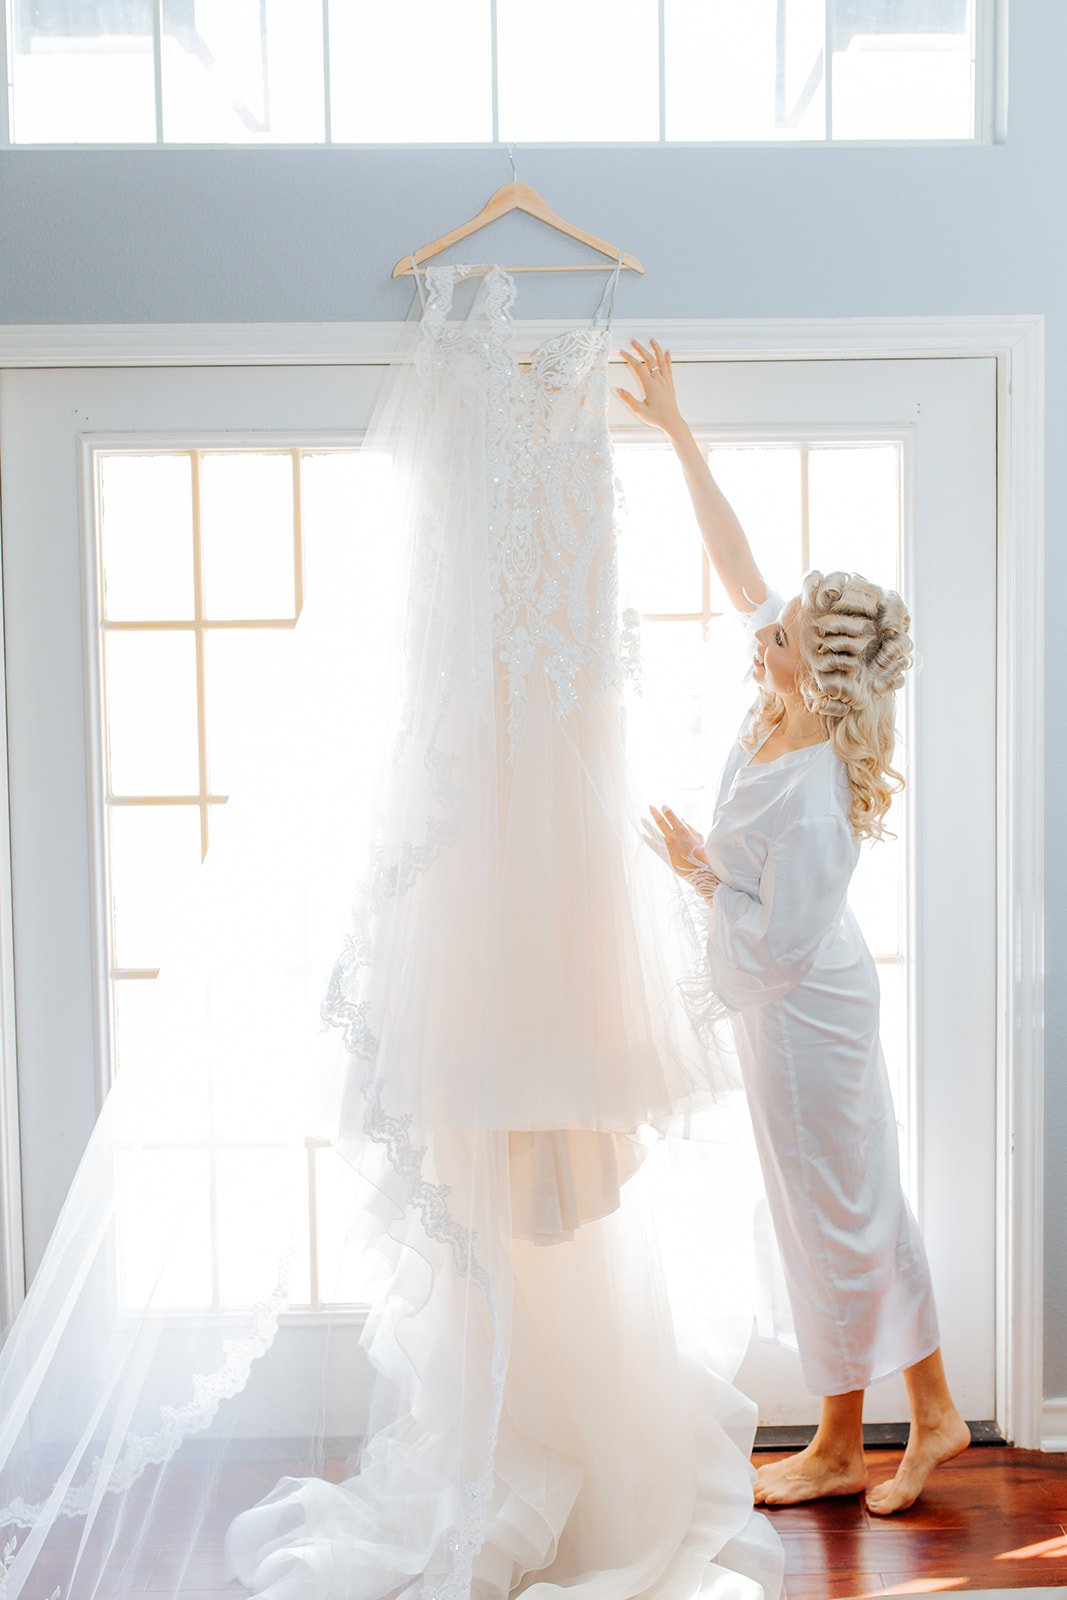 blonde bride getting ready for her big day wedding dress hanging on wall with natural light coming through